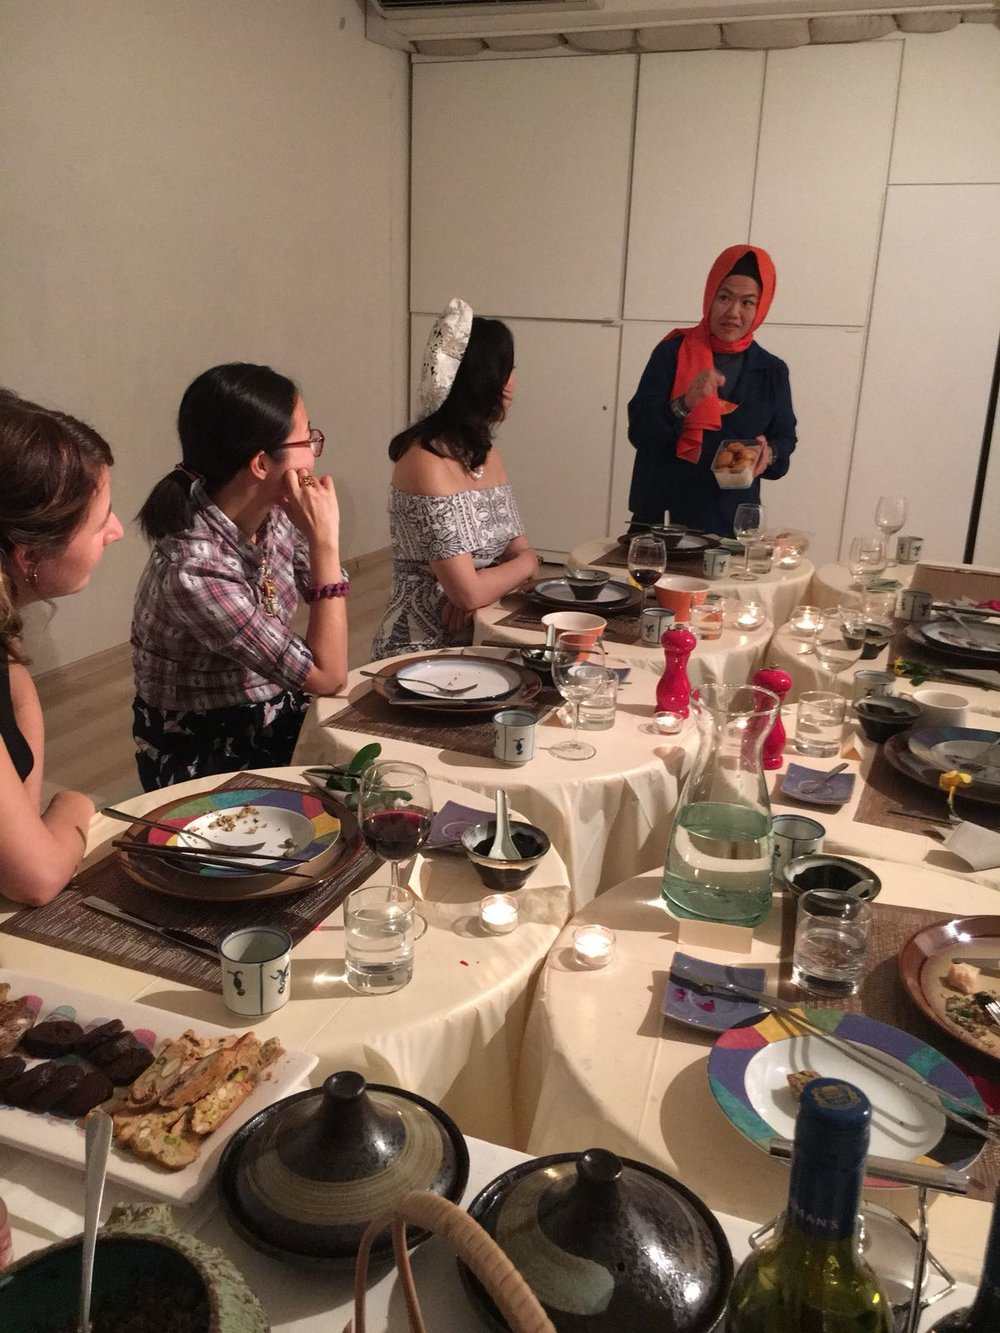 Before tasting the food, the personal story is shared.